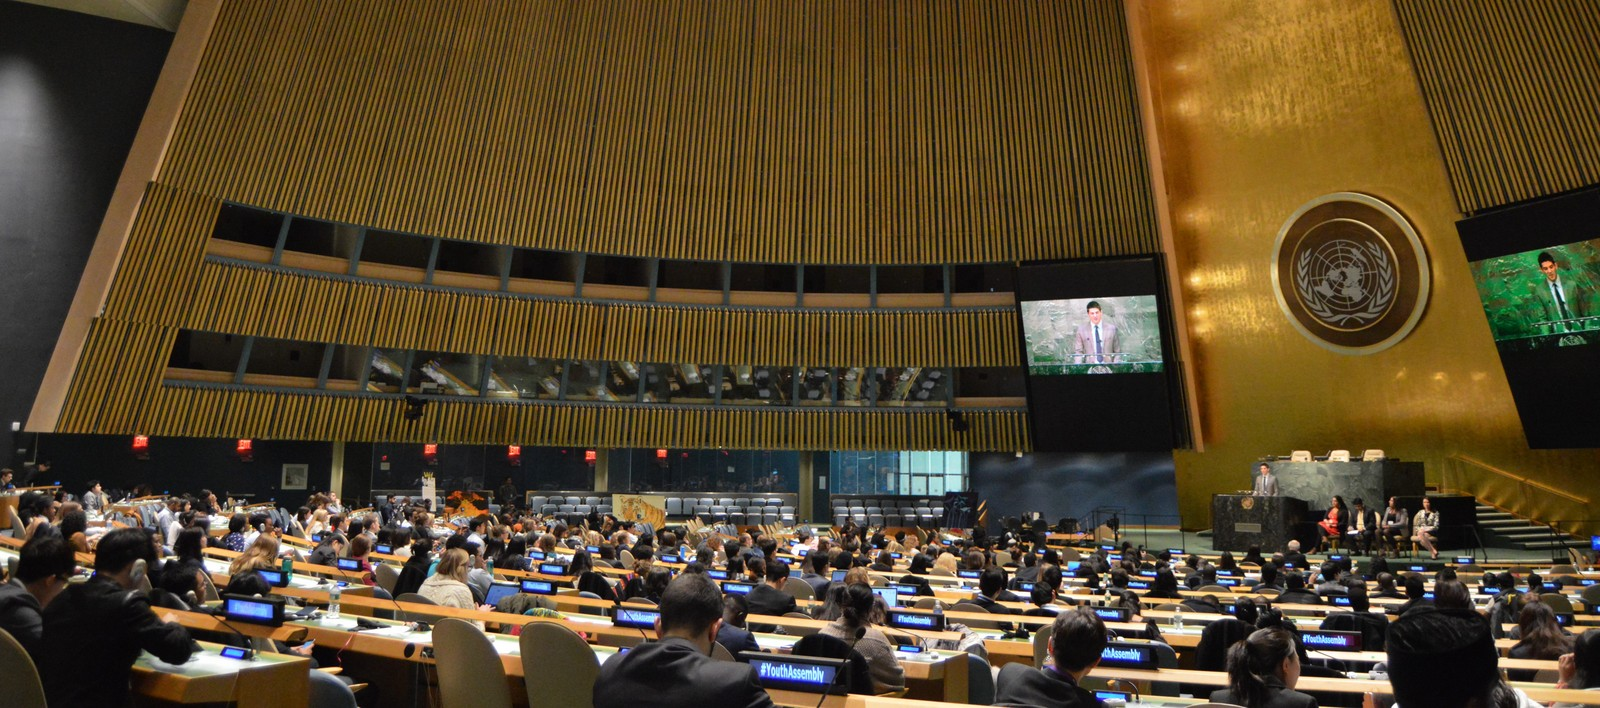 Influencing Policy at the United Nations Platforms